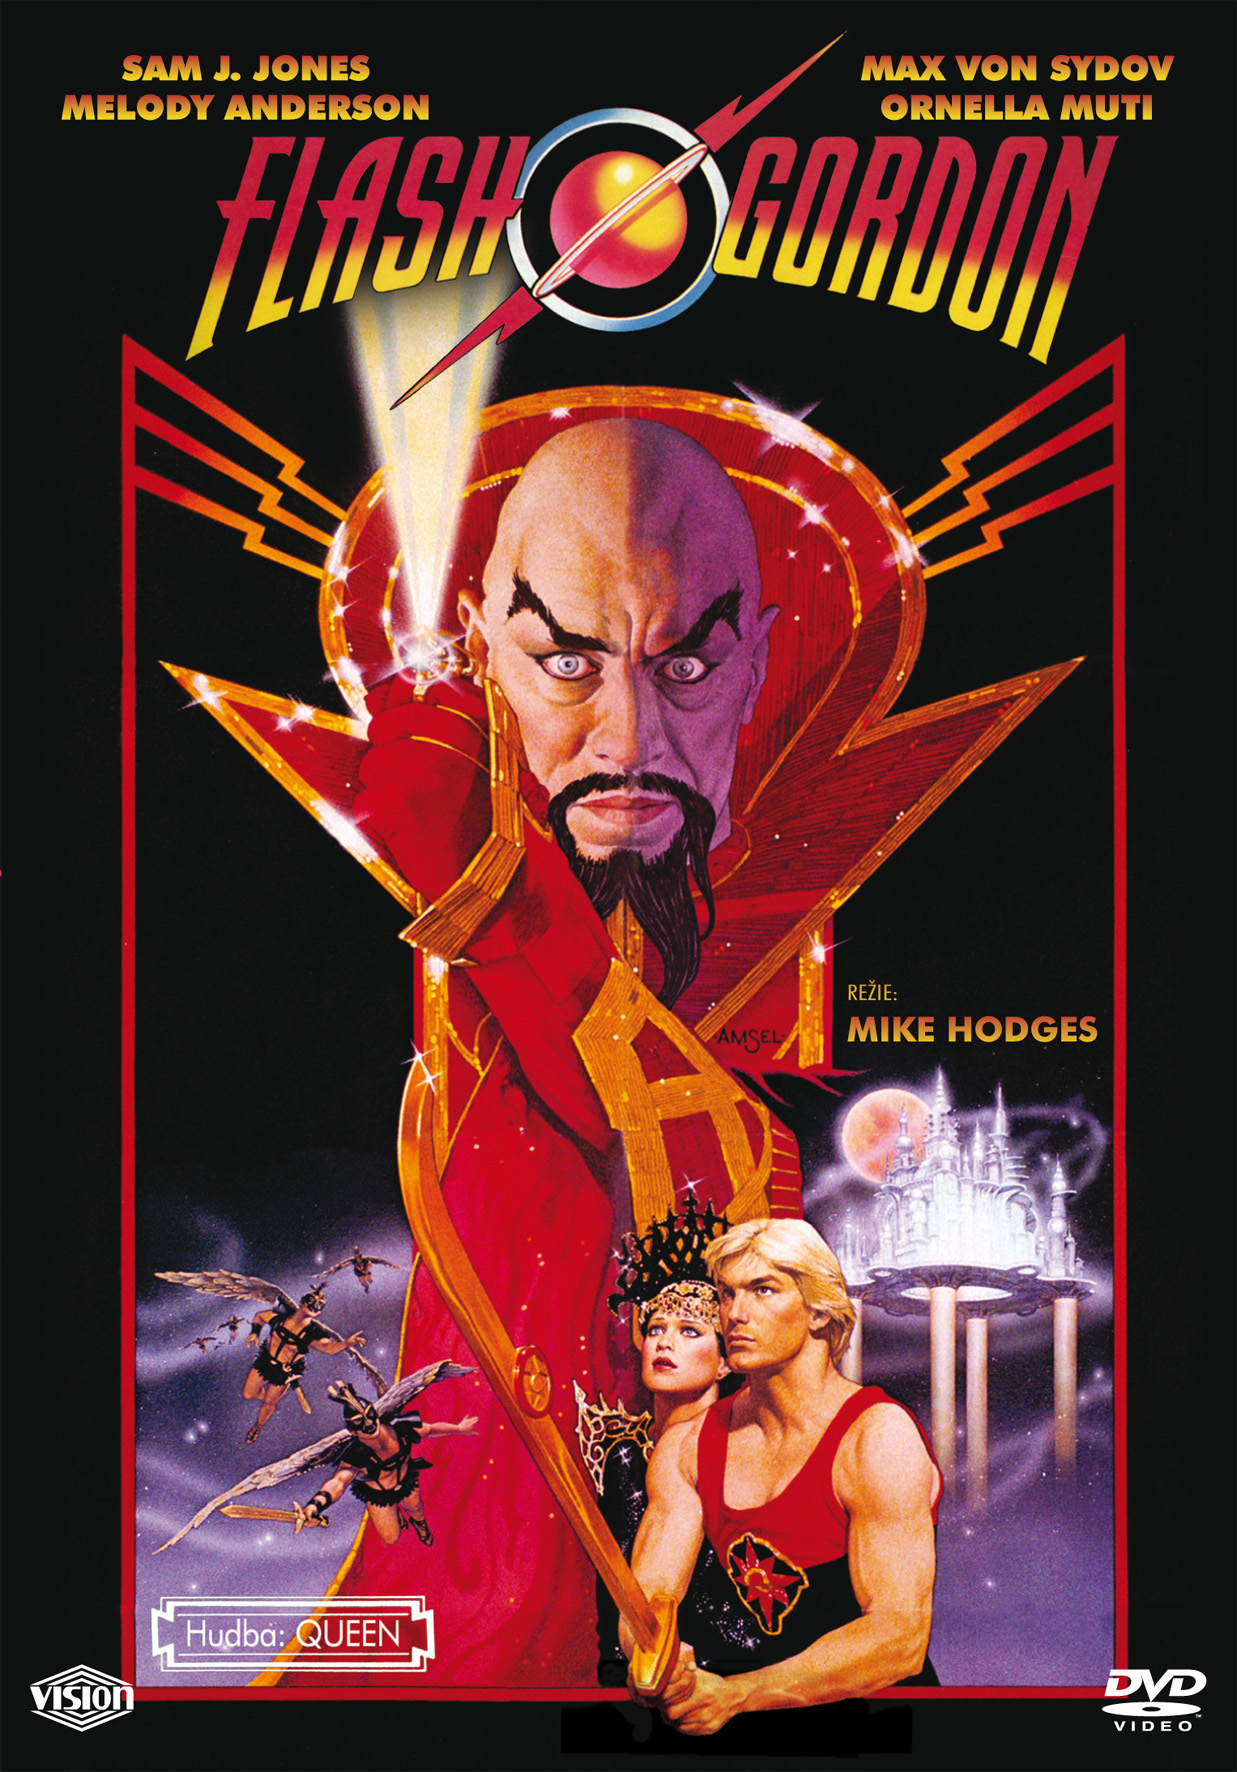 Film Flash Gordon ke stažení - Film Flash Gordon download